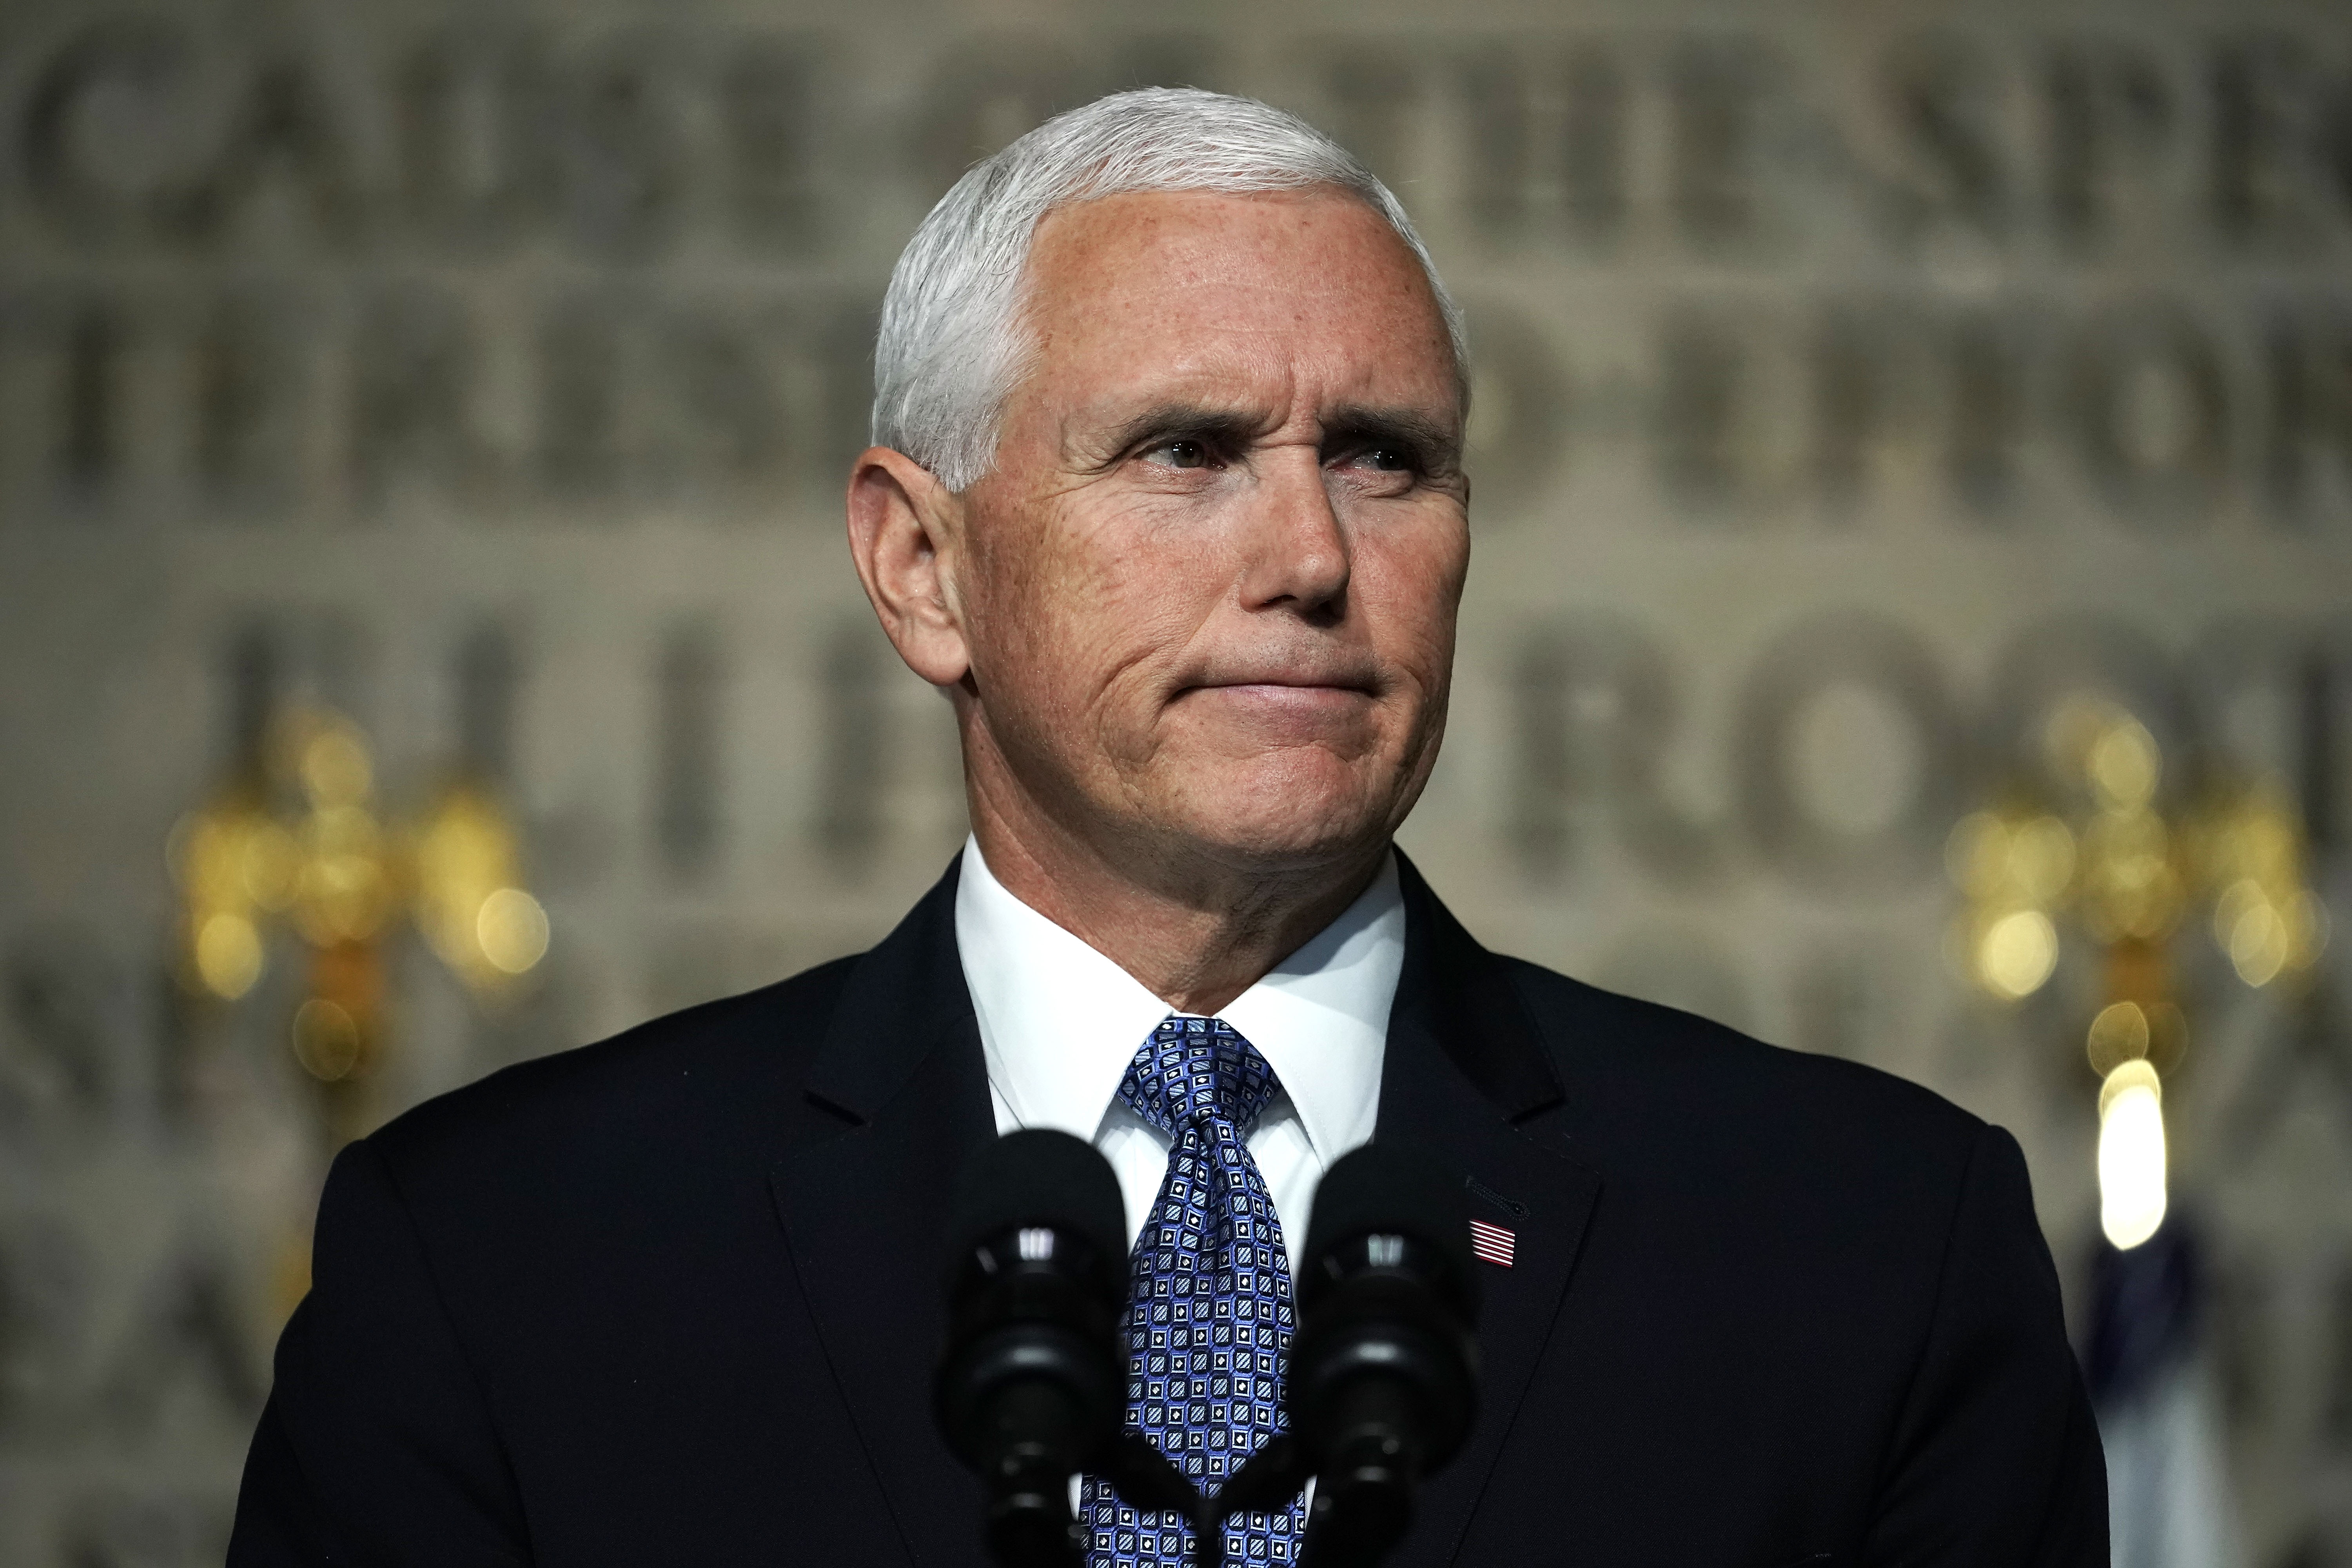 What Mike Pence's public health record says about his ability to lead on coronavirus